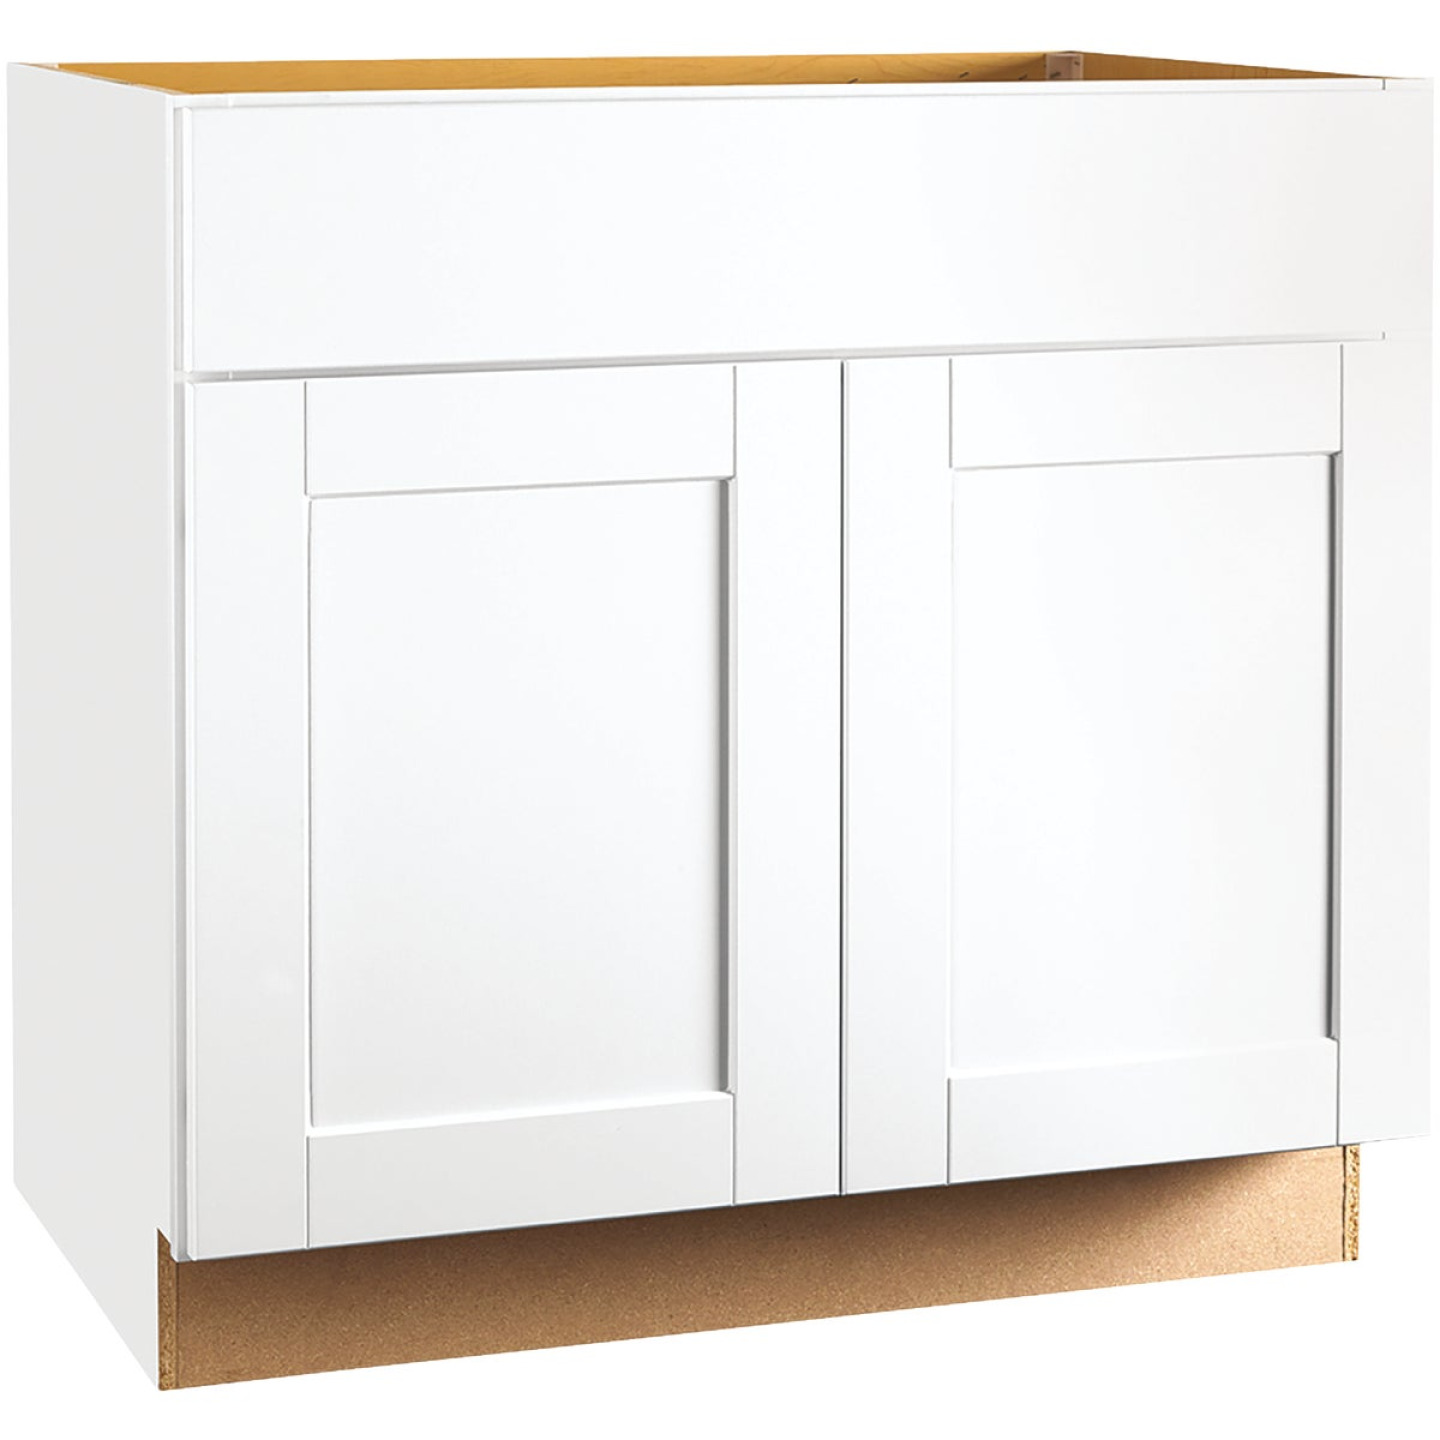 Continental Cabinets Andover Shaker 36 In. W x 34-1/2 In. H x 24 In. D White Thermofoil Sink Base Kitchen Cabinet Image 1